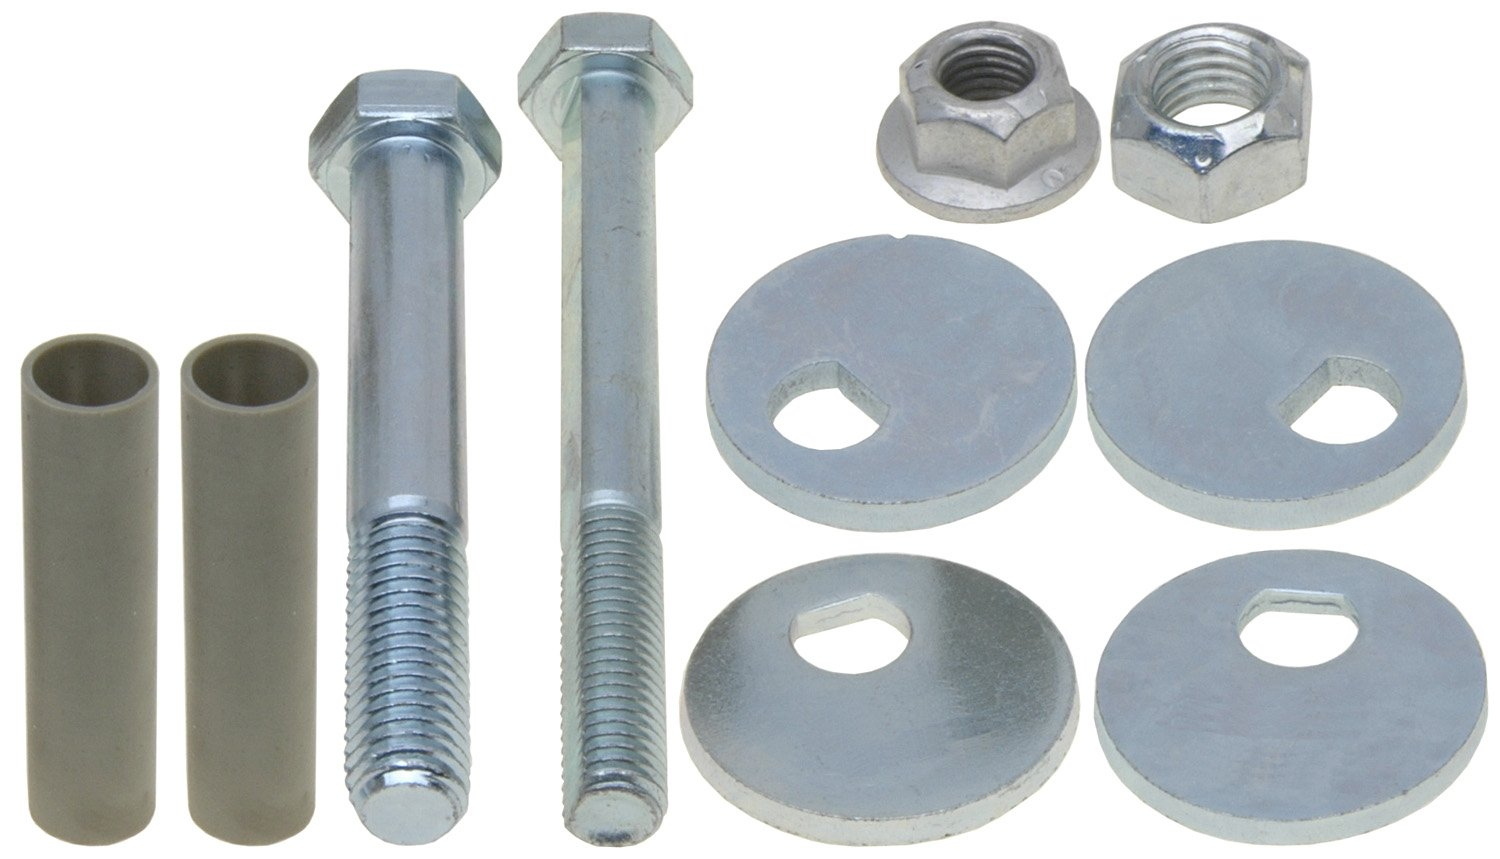 ACDelco 45K1076 Professional Front Caster/Camber Adjusting Kit with Hardware